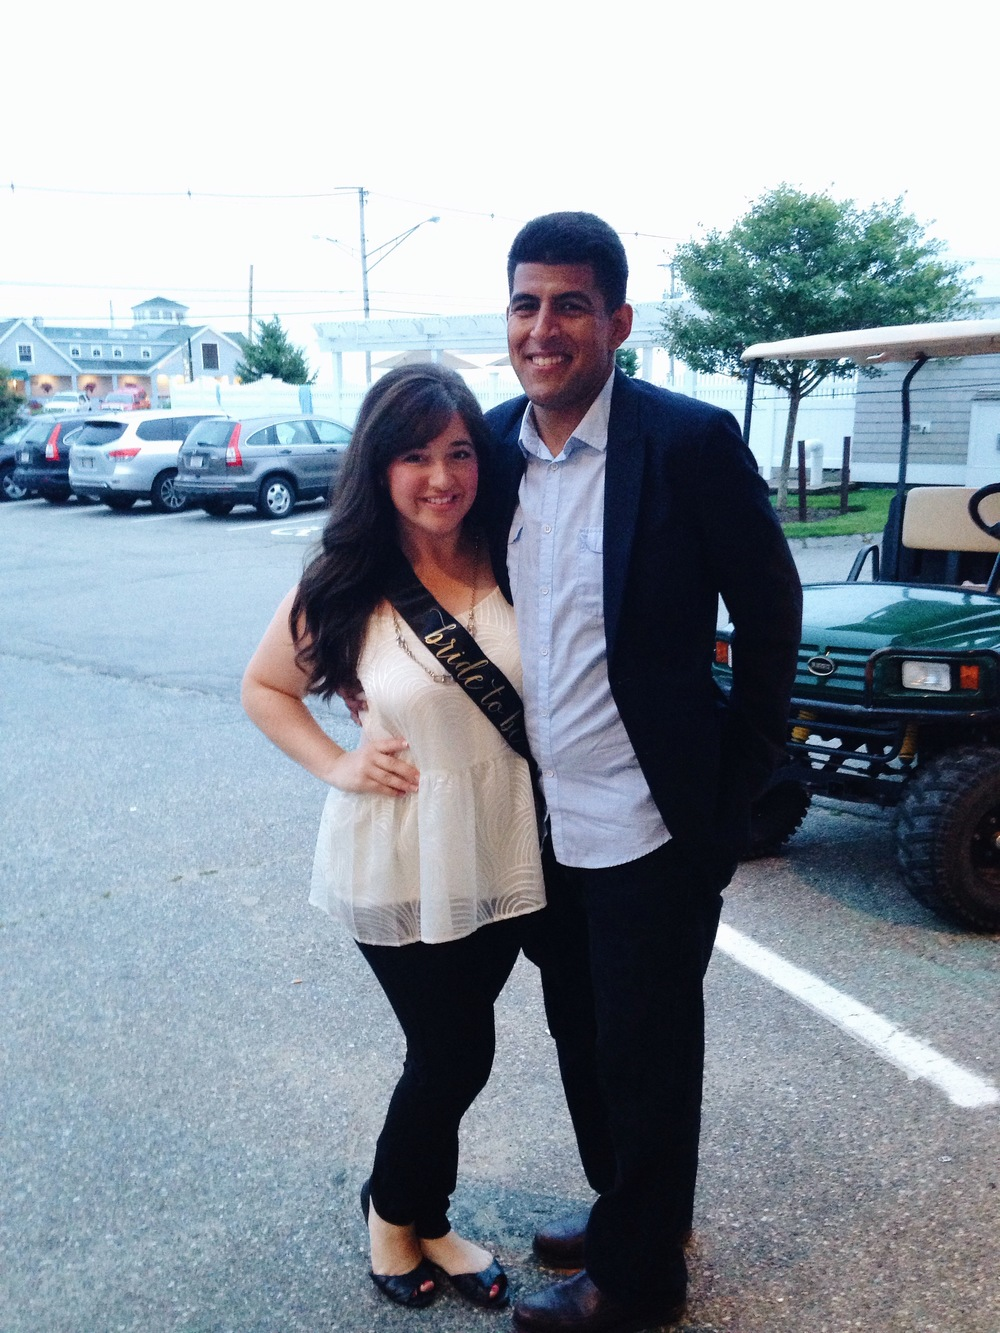 The bachelorette and her bachelor ready for a night out on the town.